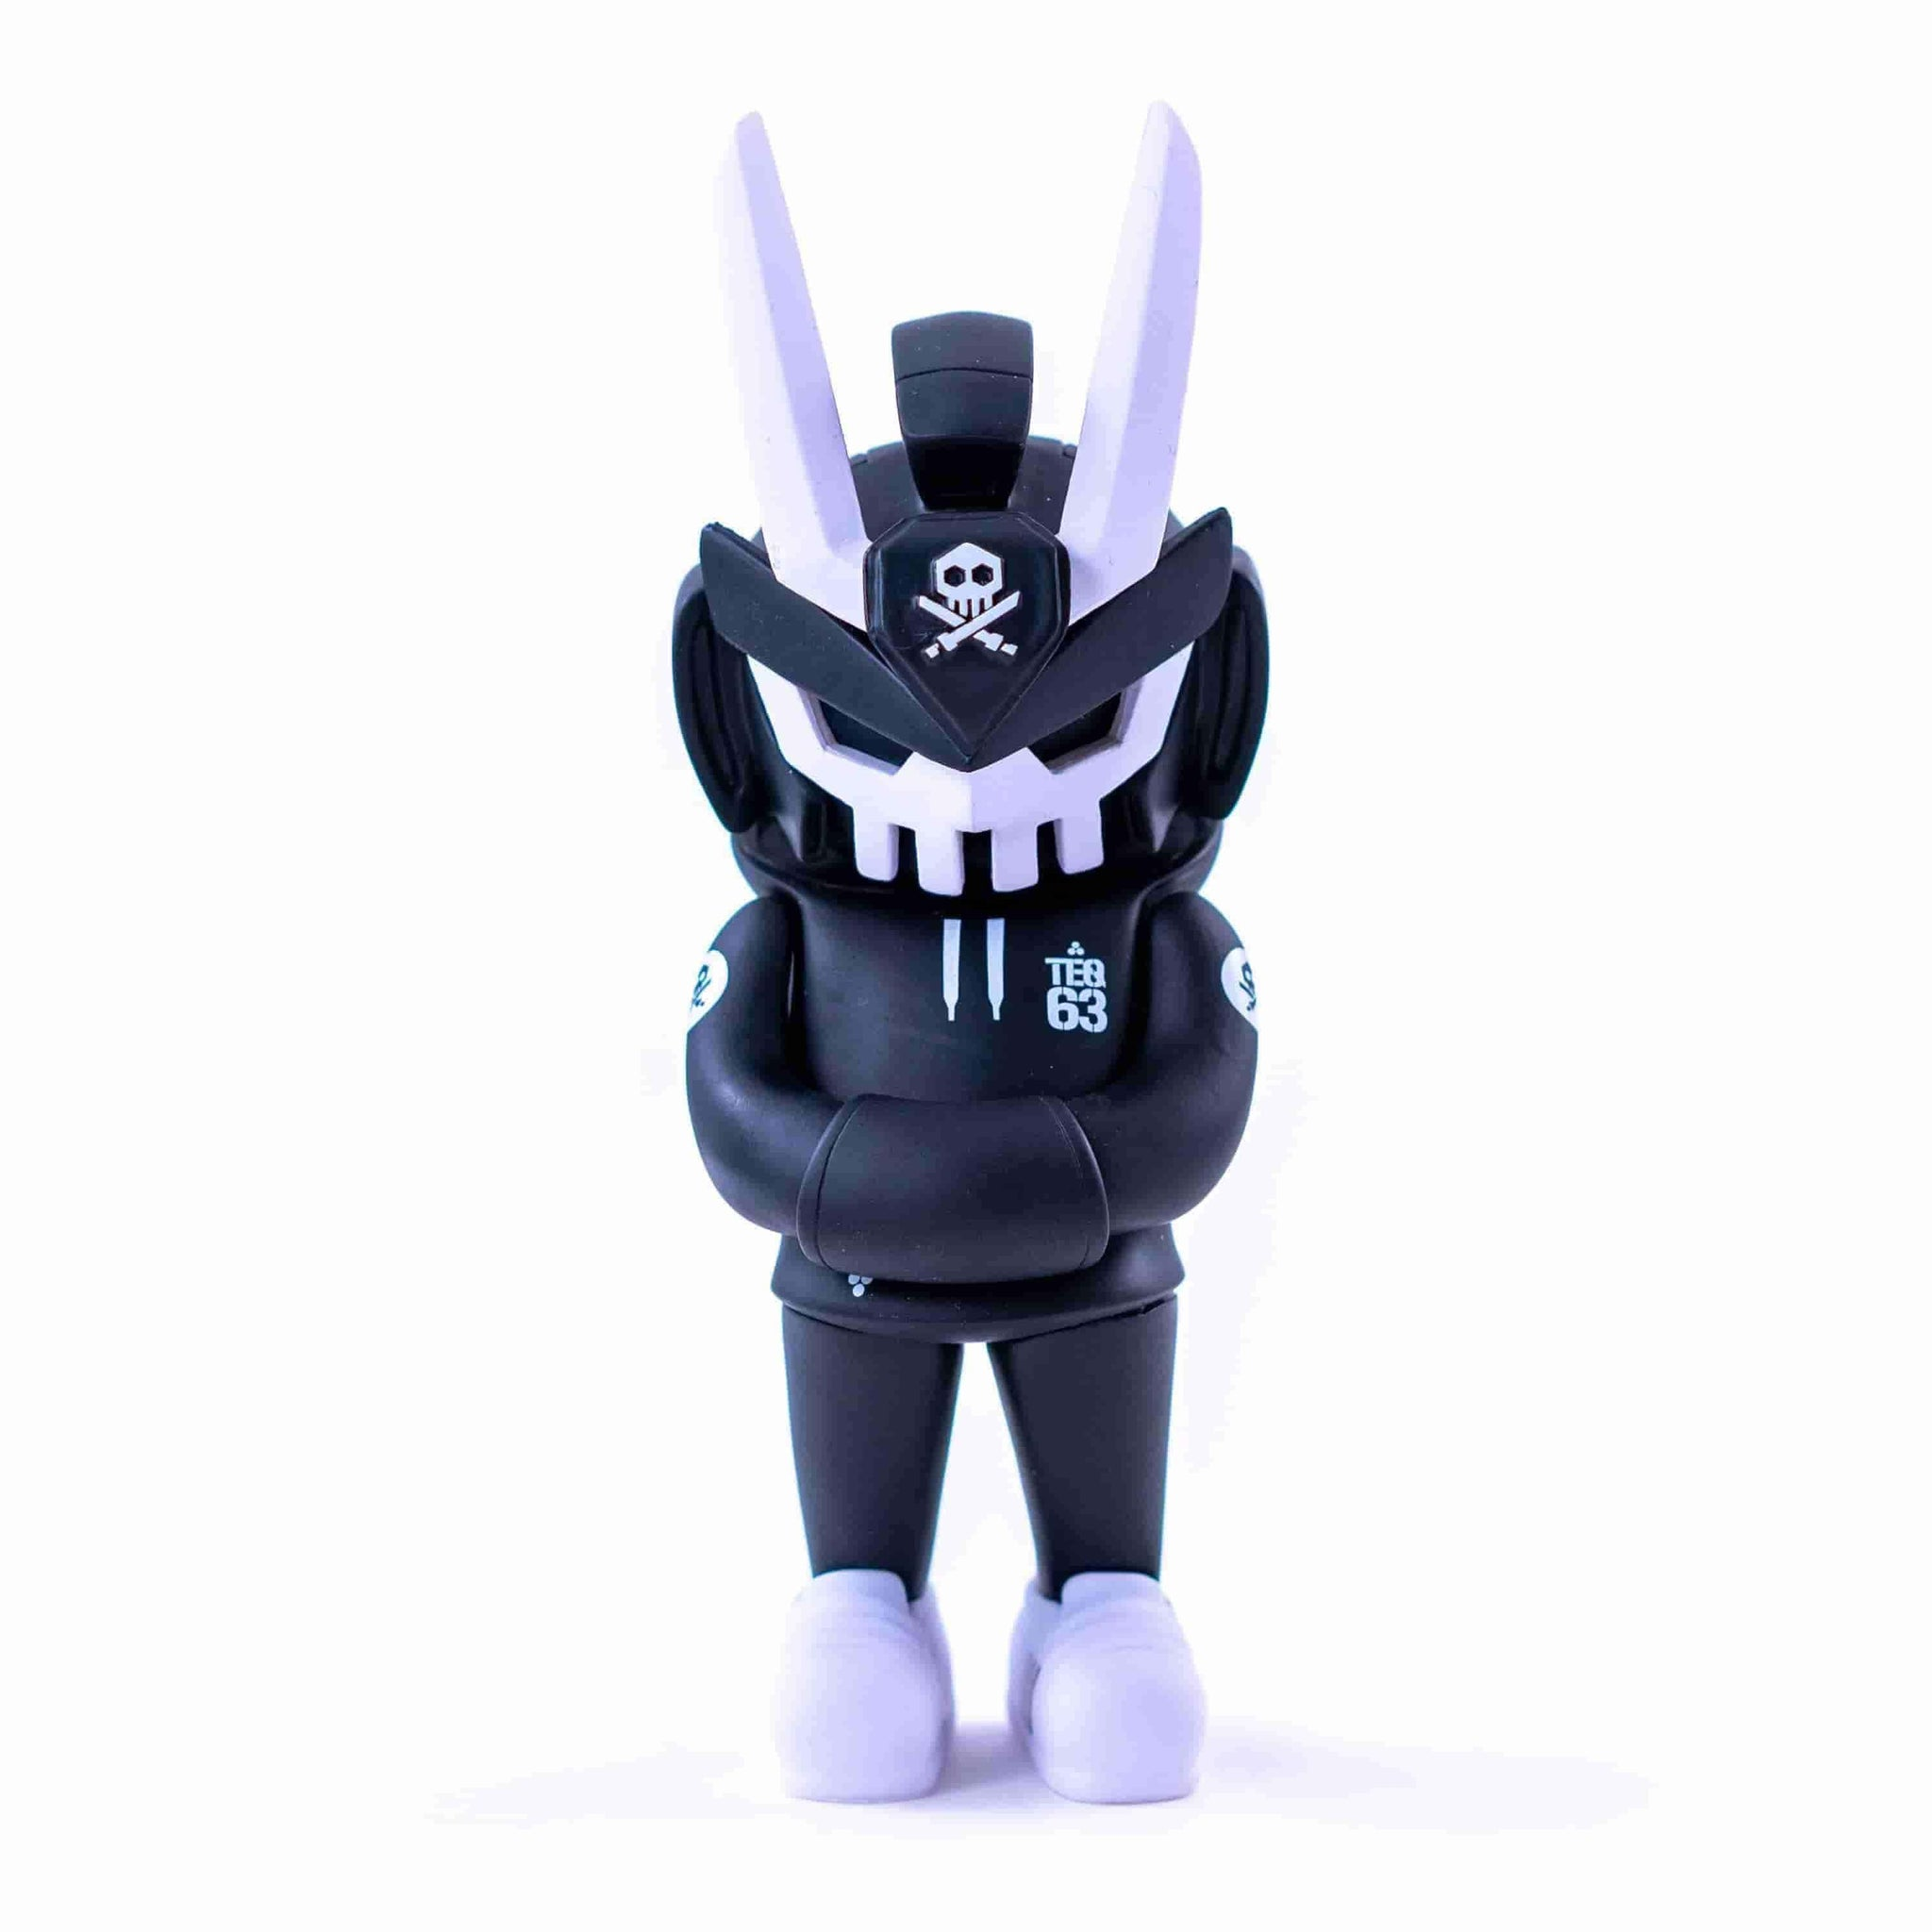 CORE EDITION TEQ 63 OG BLACK - 6 Inch Medium Figure by Martian Toys x Quiccs - IamRetro